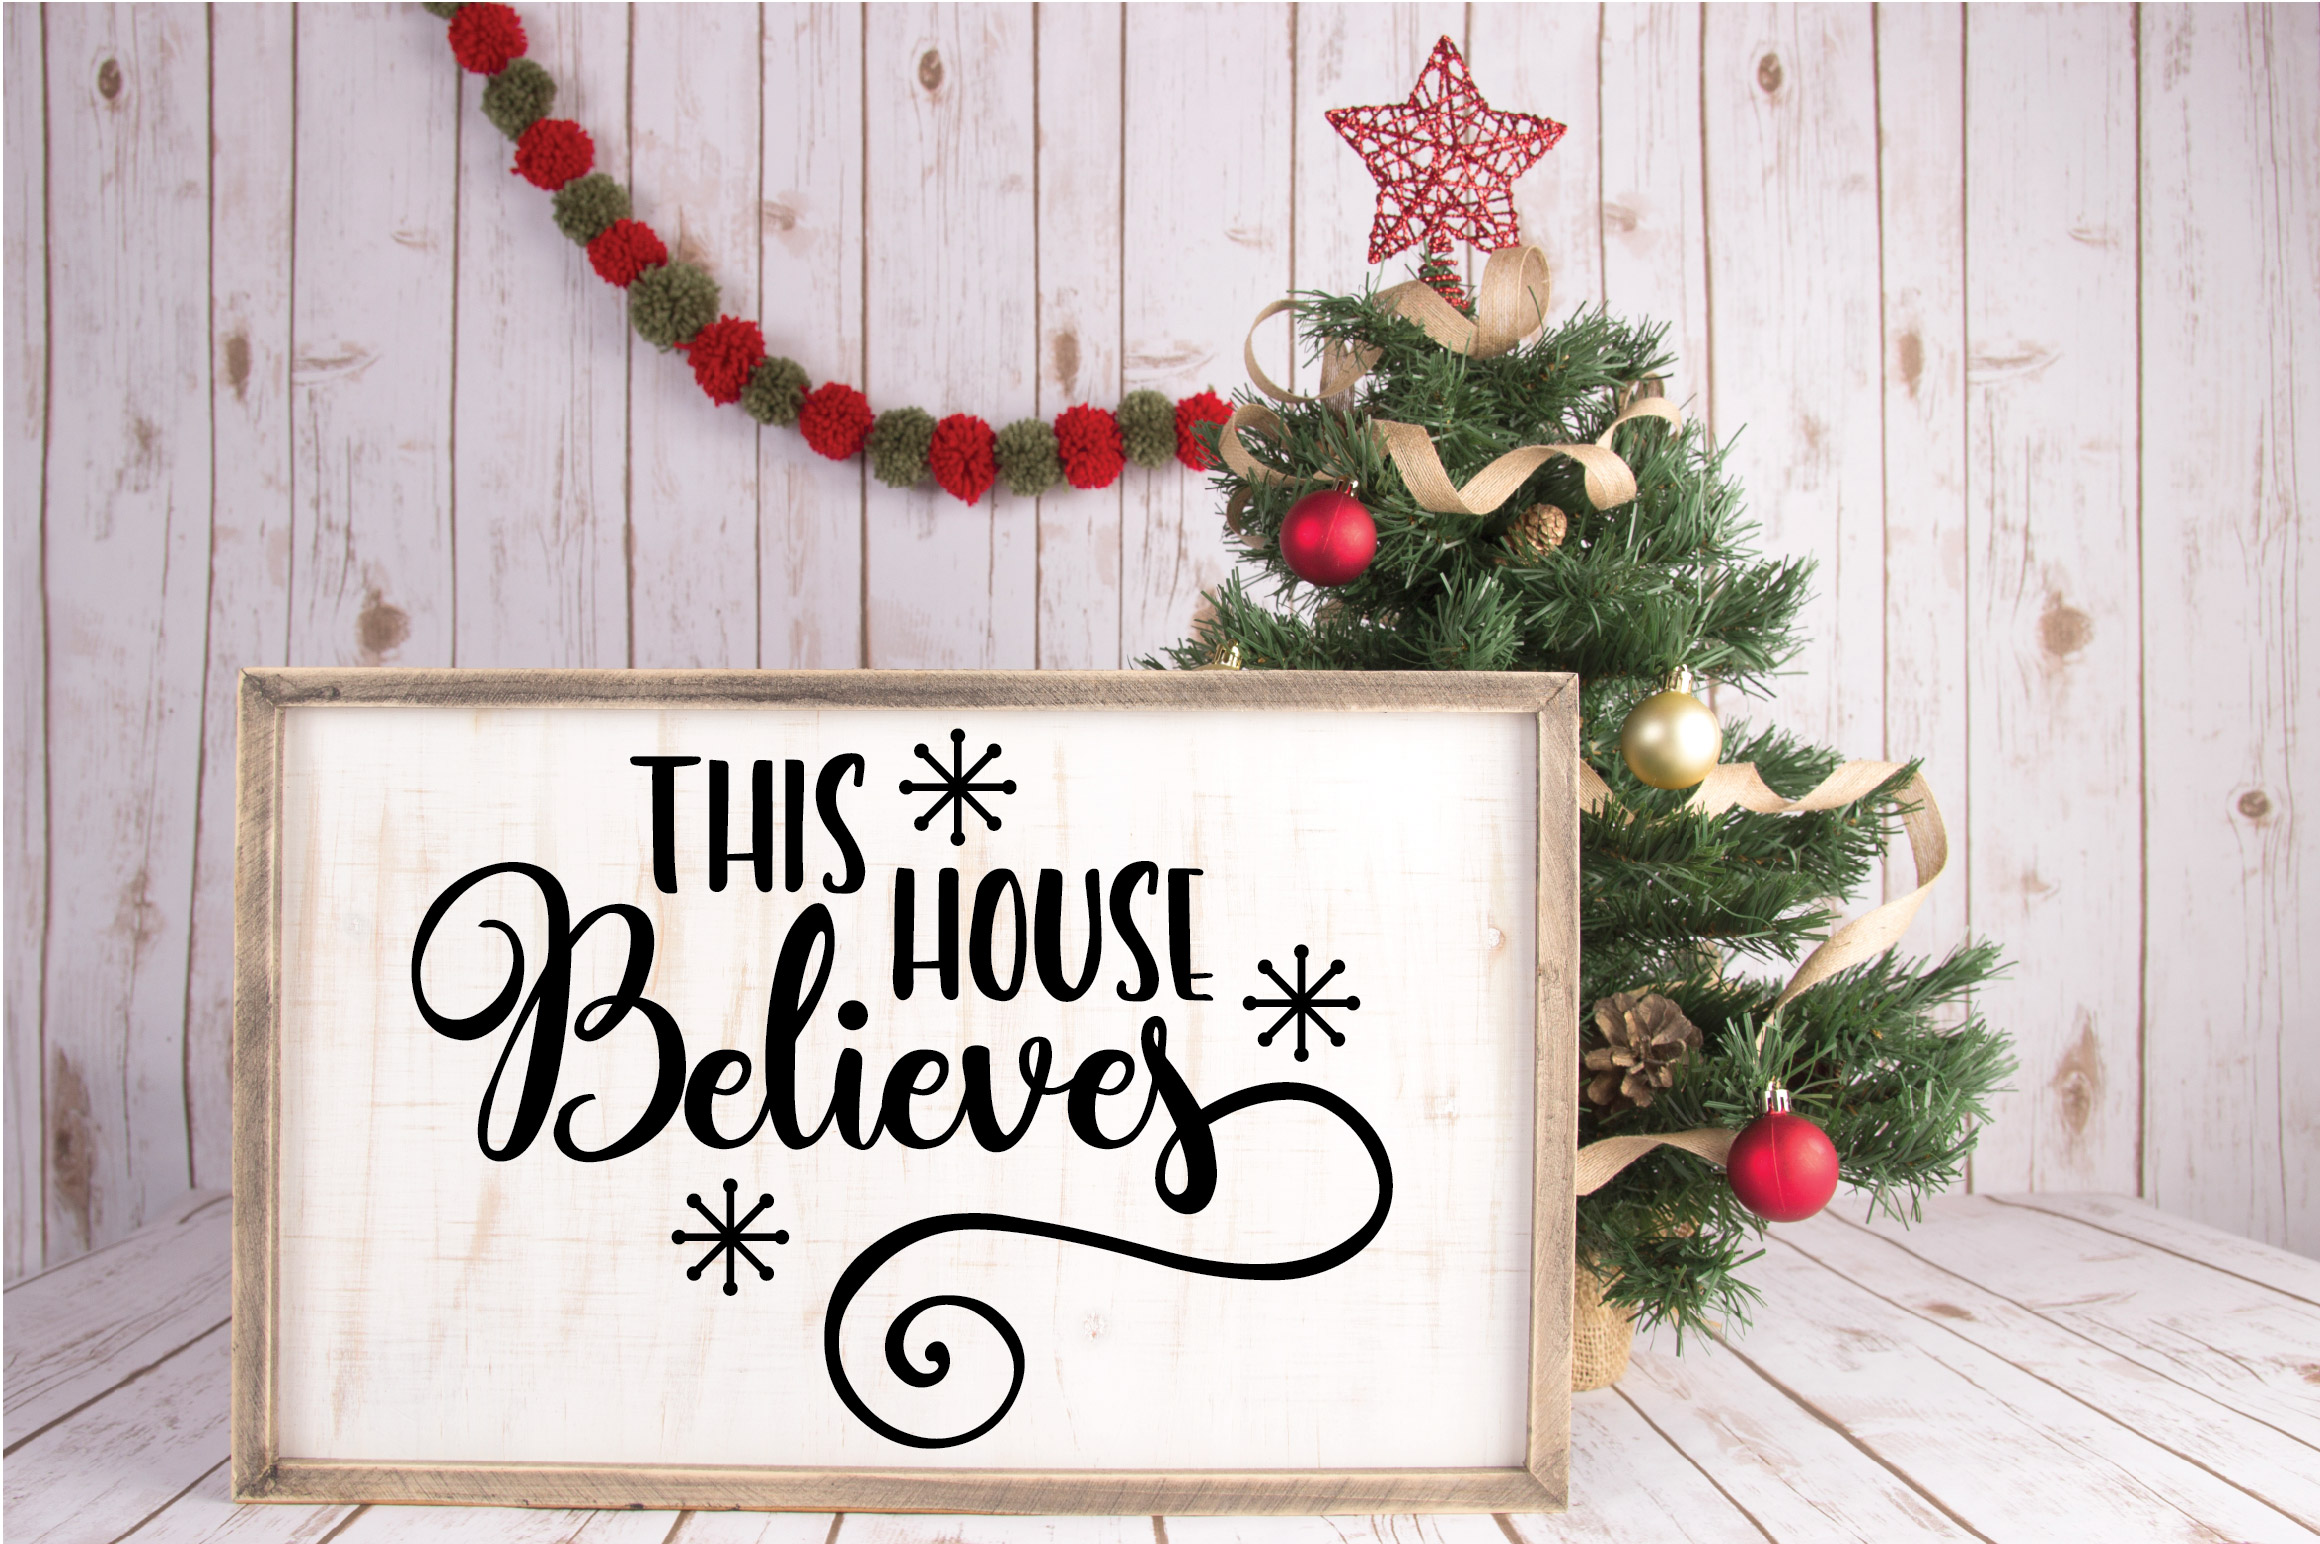 Christmas SVG Cut File - This House Believes SVG DXF PNG EPS example image 4